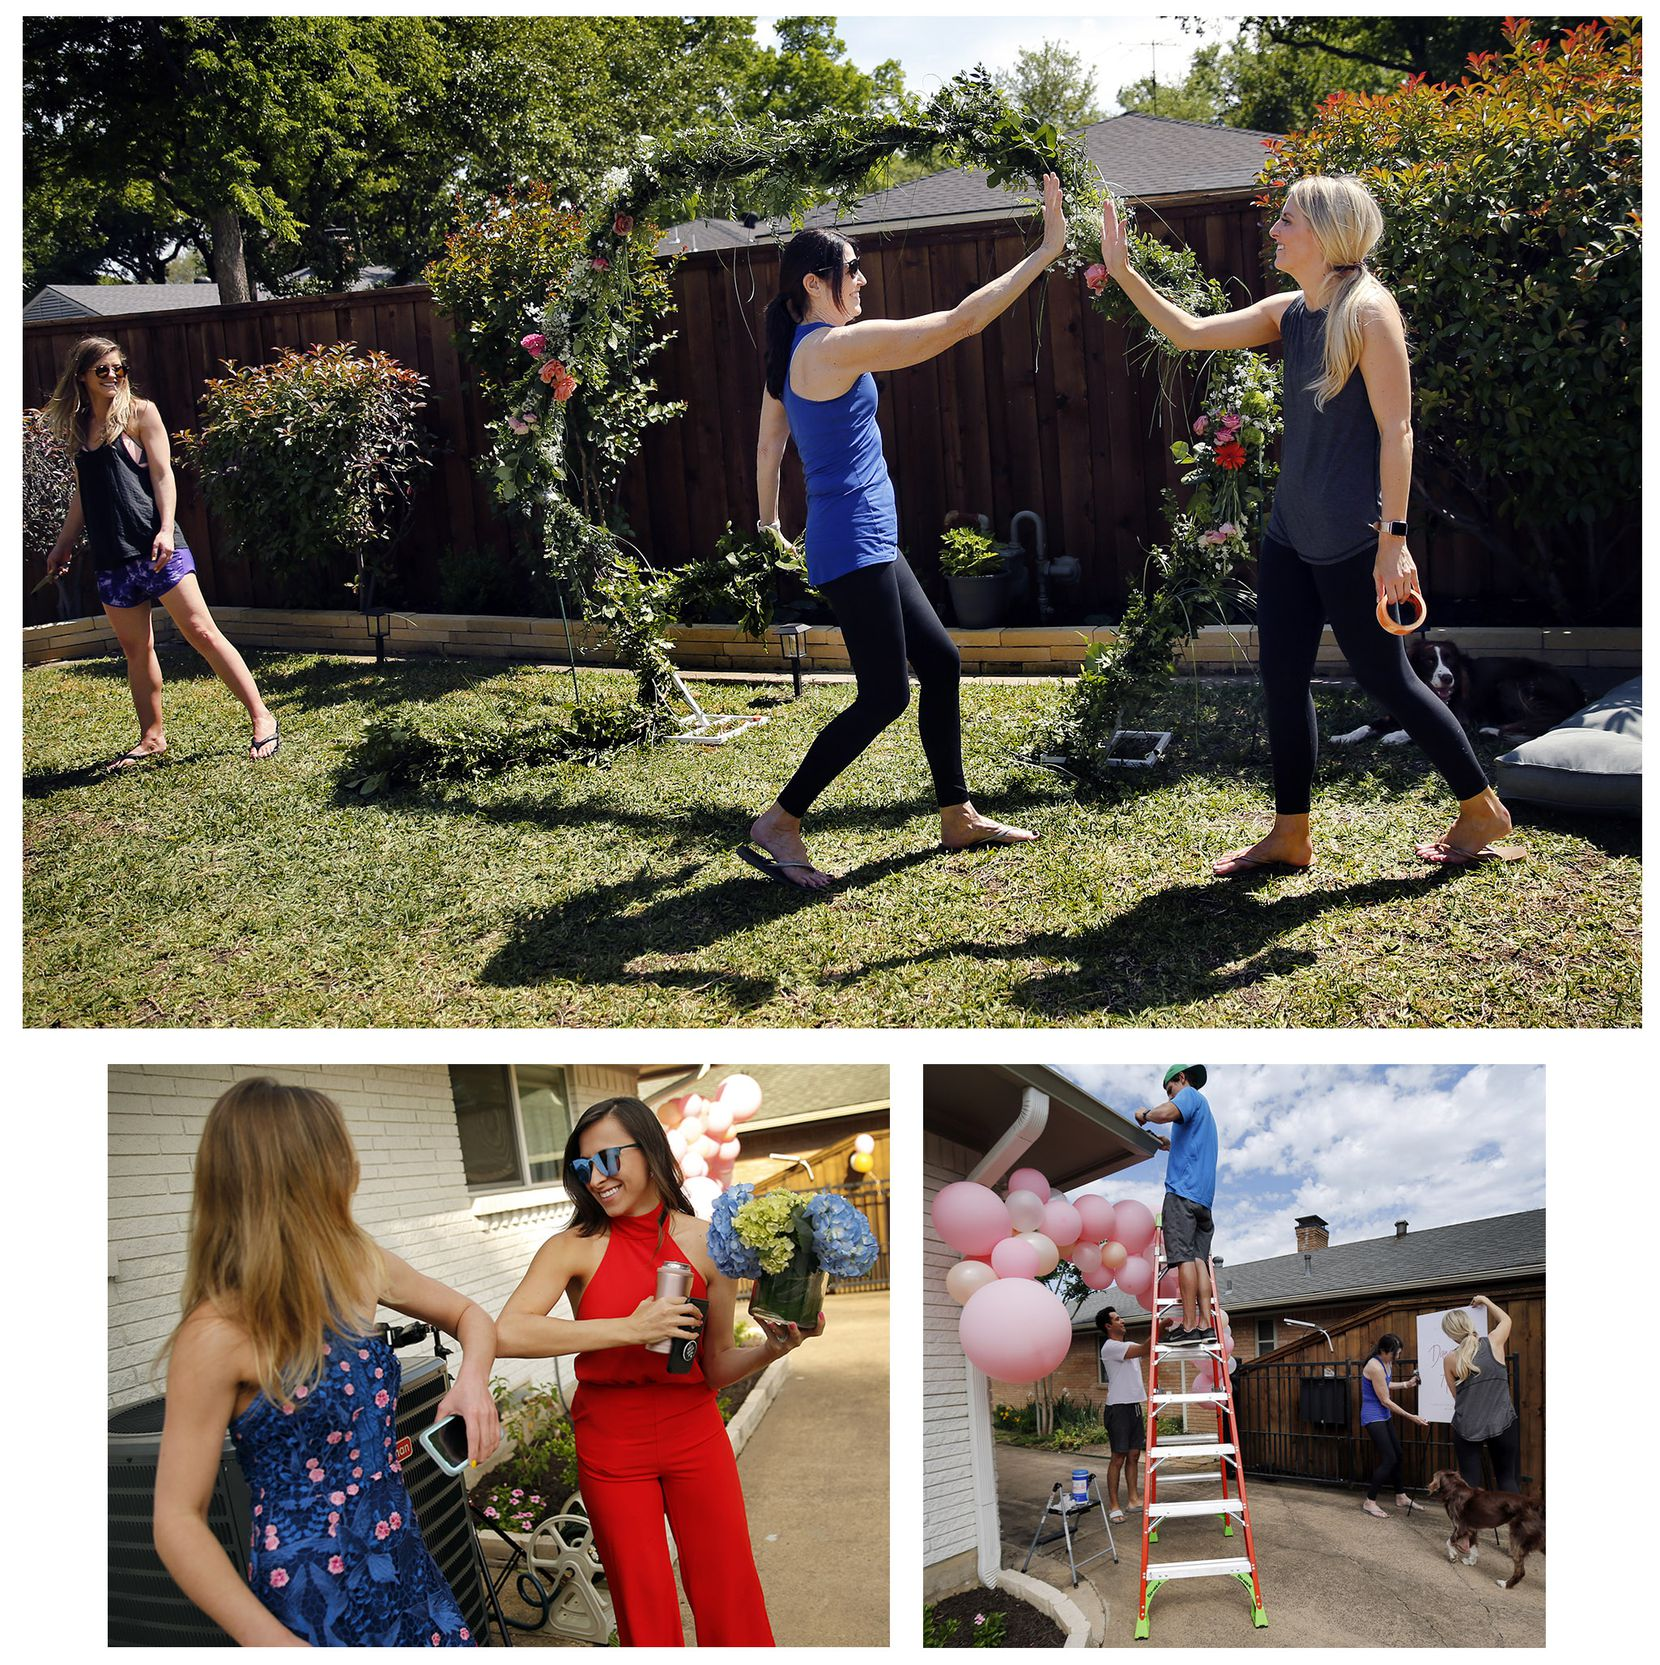 Clockwise from top, Carol Striph (center) gives her daughter, Dana Striph, a high-five after constructing an arch for their backyard wedding in northeast Dallas on Saturday, April 25, 2020. Joining them was a friend, Ashley Morgan.  Shortly thereafter, a large gust of wind blew over the arch, damaging it. As a solution, they hung the arch from the fence.  With the help of friends and family, Dana Striph (right) and her fiance, Andrew Houshian (on ladder), decorate the driveway entrance to their backyard. Ashley Morgan (left) gives the bride's sister Hannah Marshall an elbow touch greeting as she arrives for the wedding.